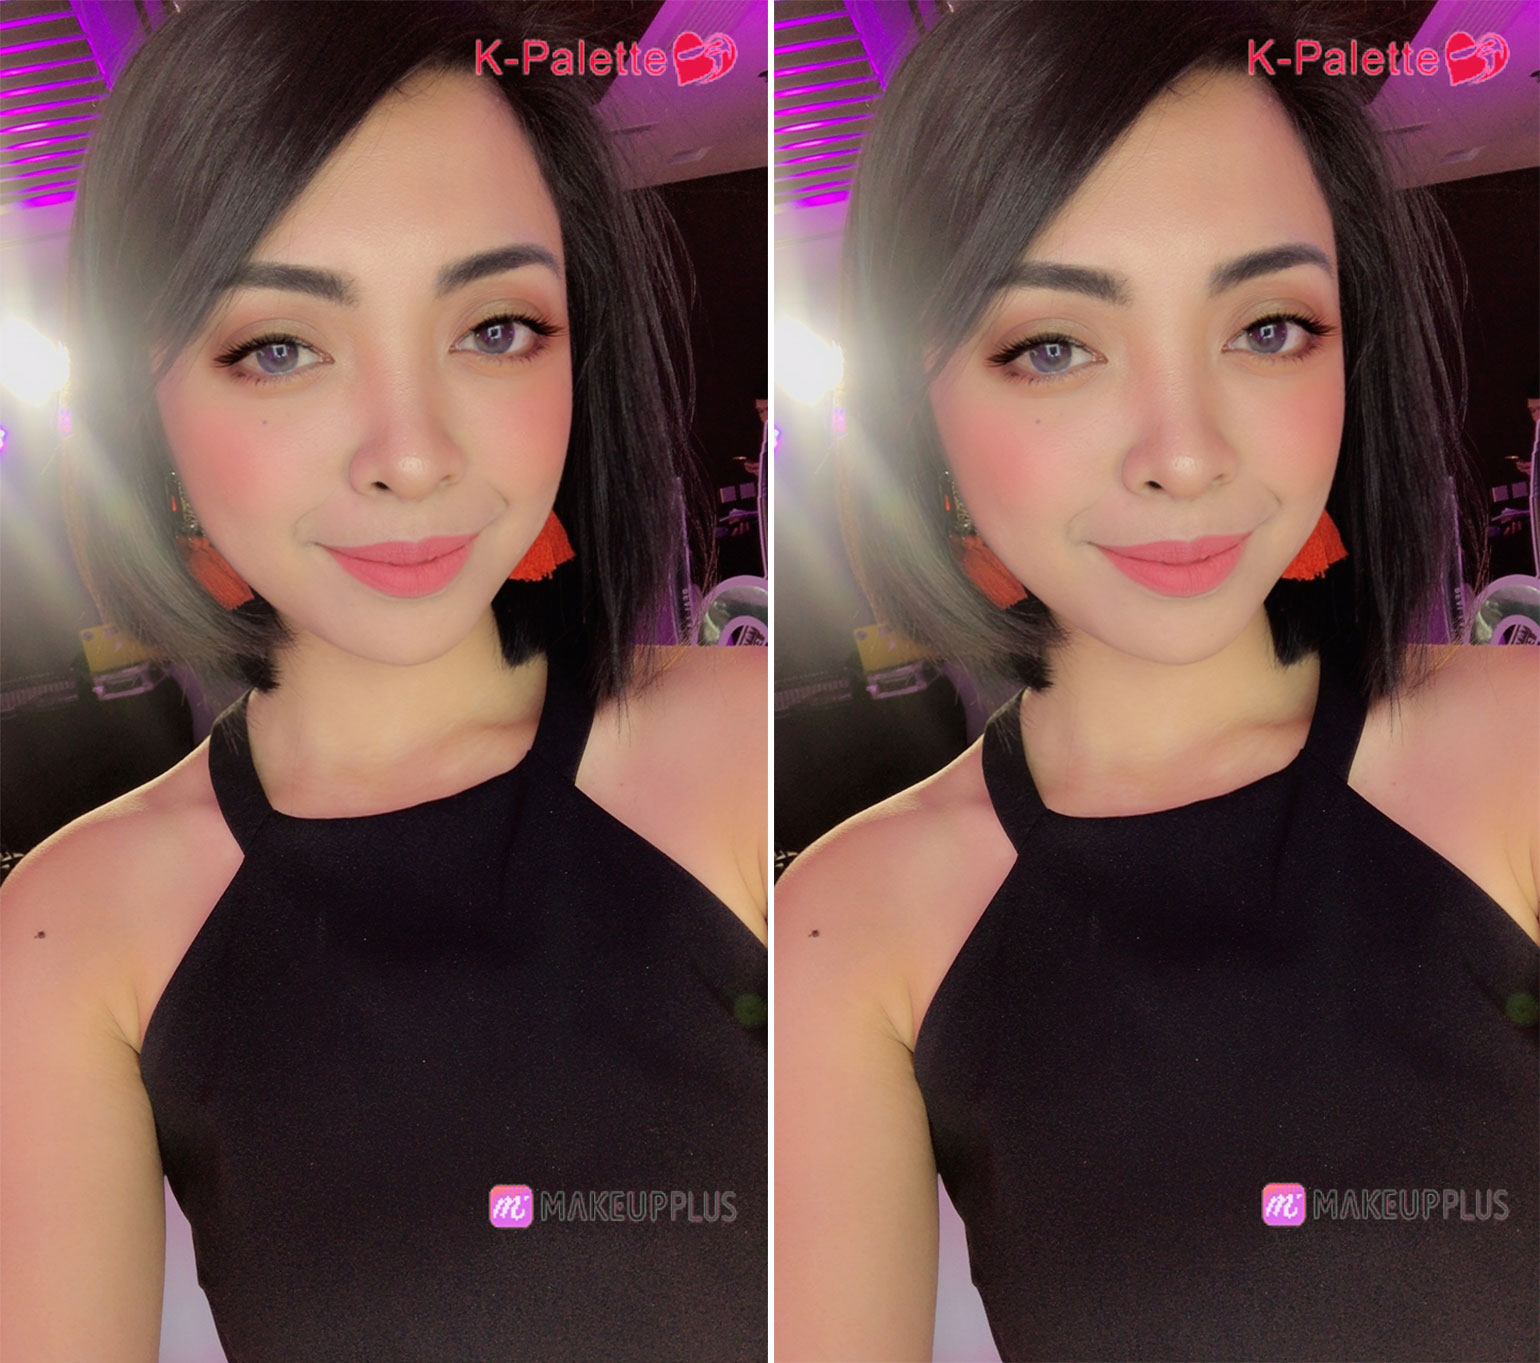 17 KPalette x Makeup Plus PH - Gen-zel She Sings Beauty